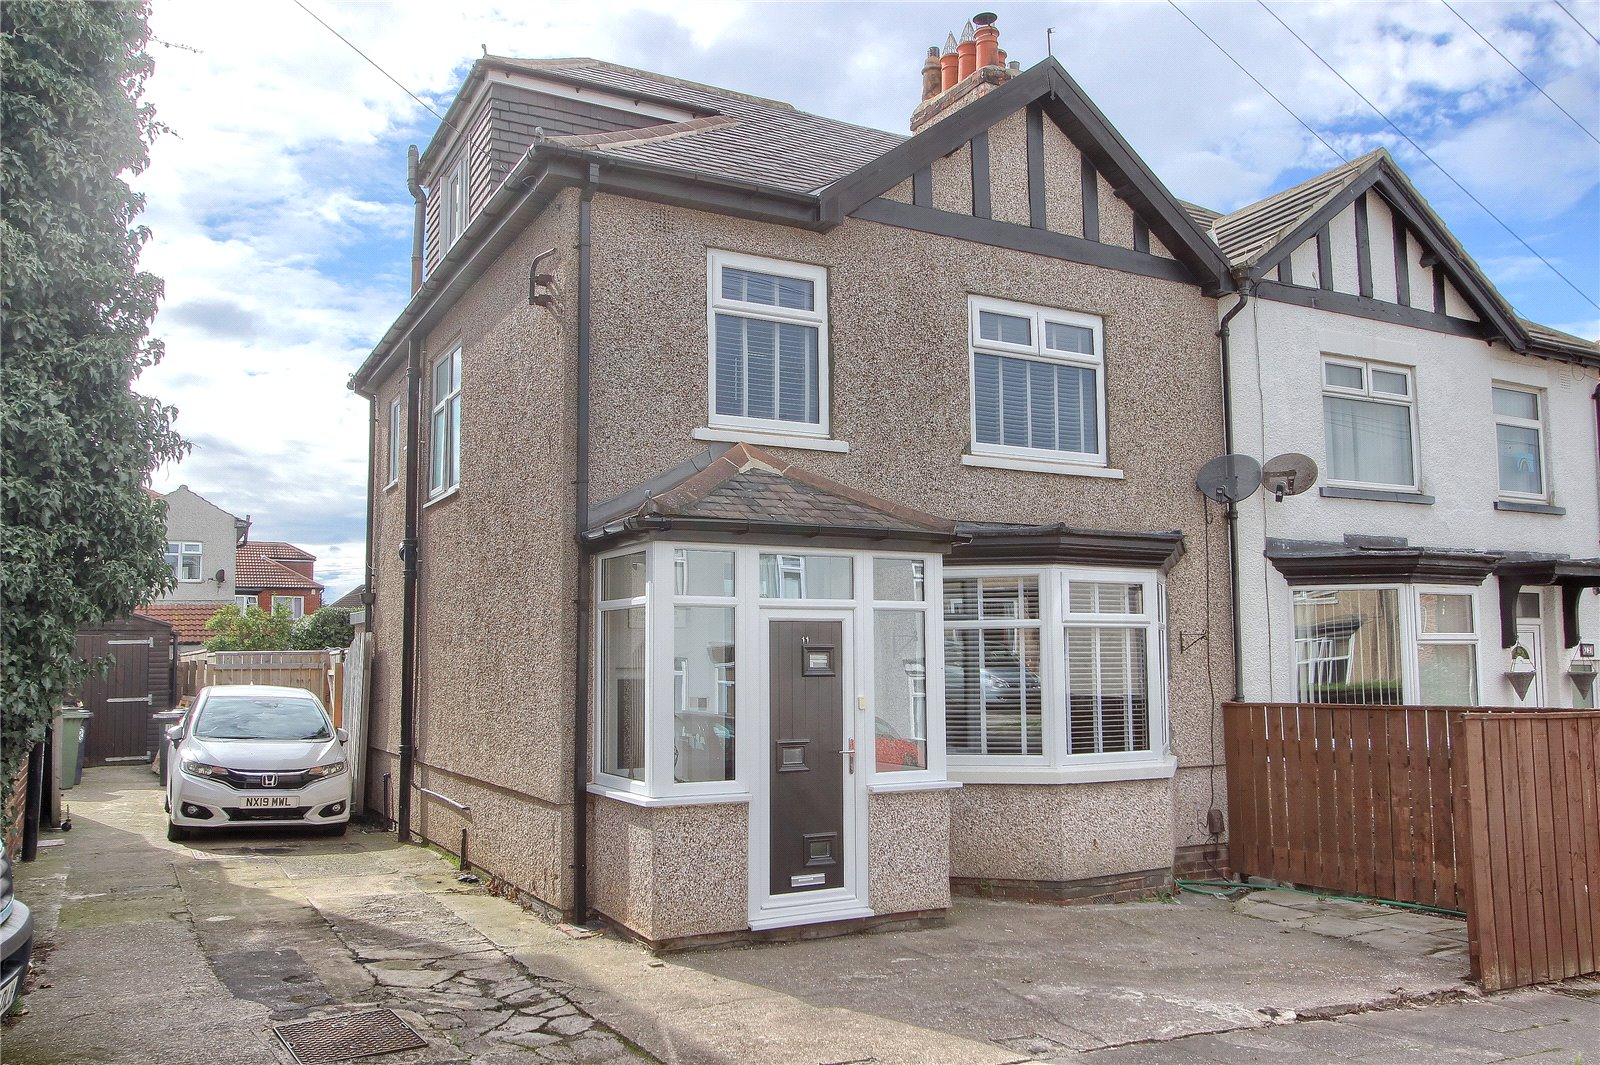 4 bed house for sale in Irvin Avenue, Saltburn-by-the-Sea - Property Image 1